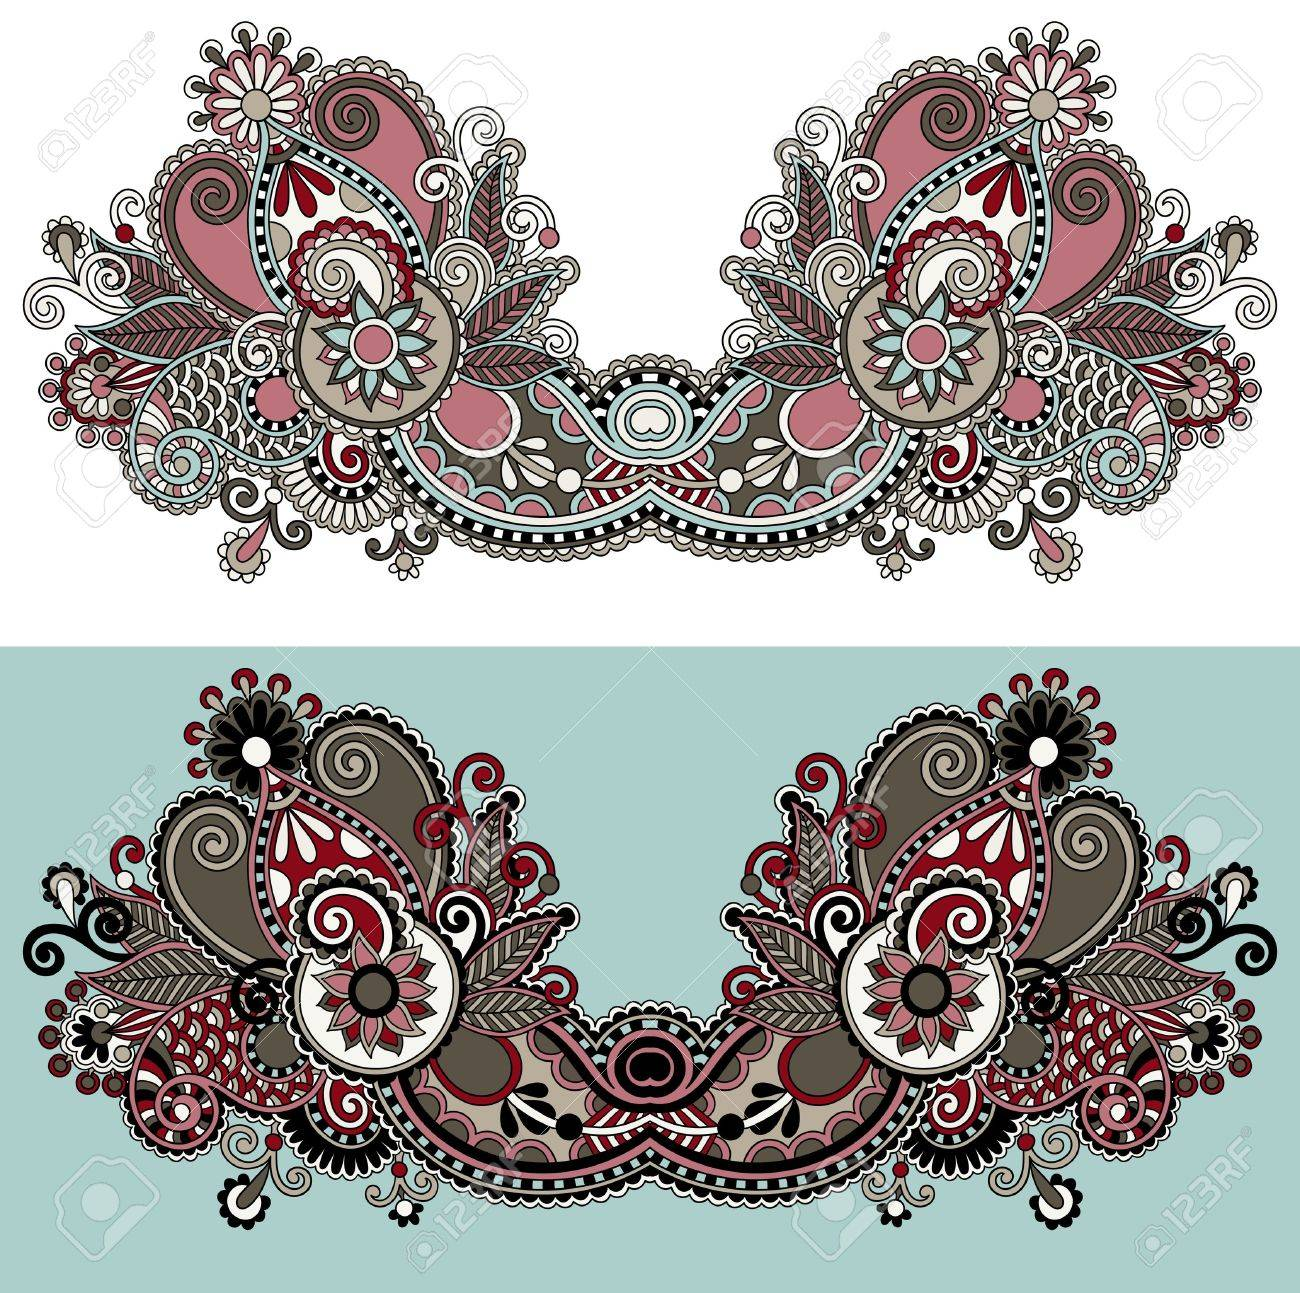 Neckline ornate floral paisley embroidery fashion design, ukrainian ethnic style. Good design for print clothes or shirt Stock Vector - 21680688